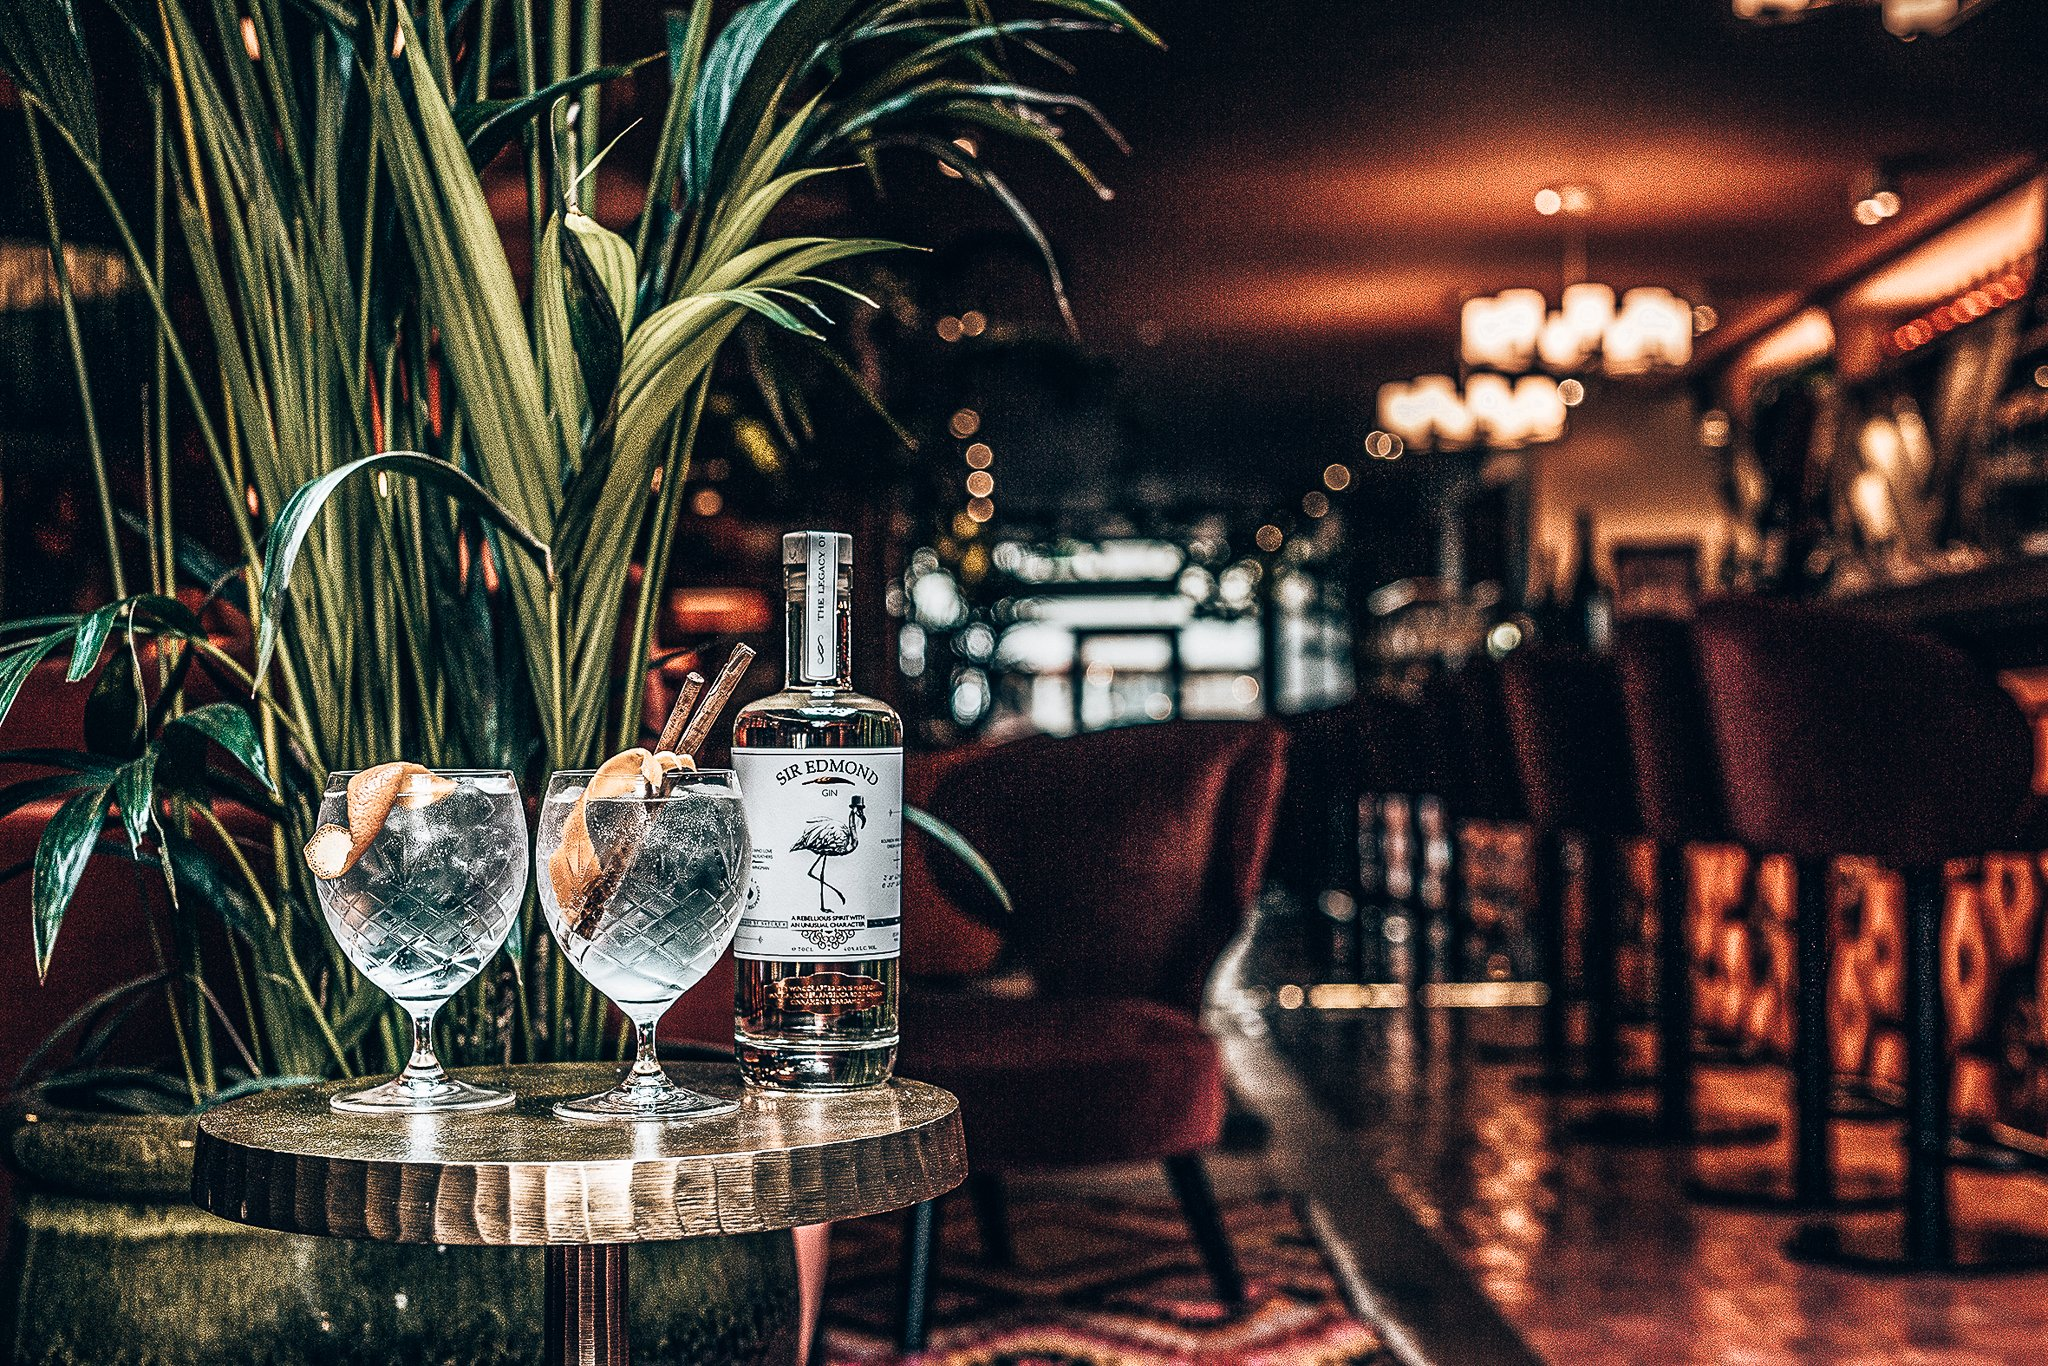 Sir Edmond Gin, Bourbon vanille infused gin, Alles over gin.